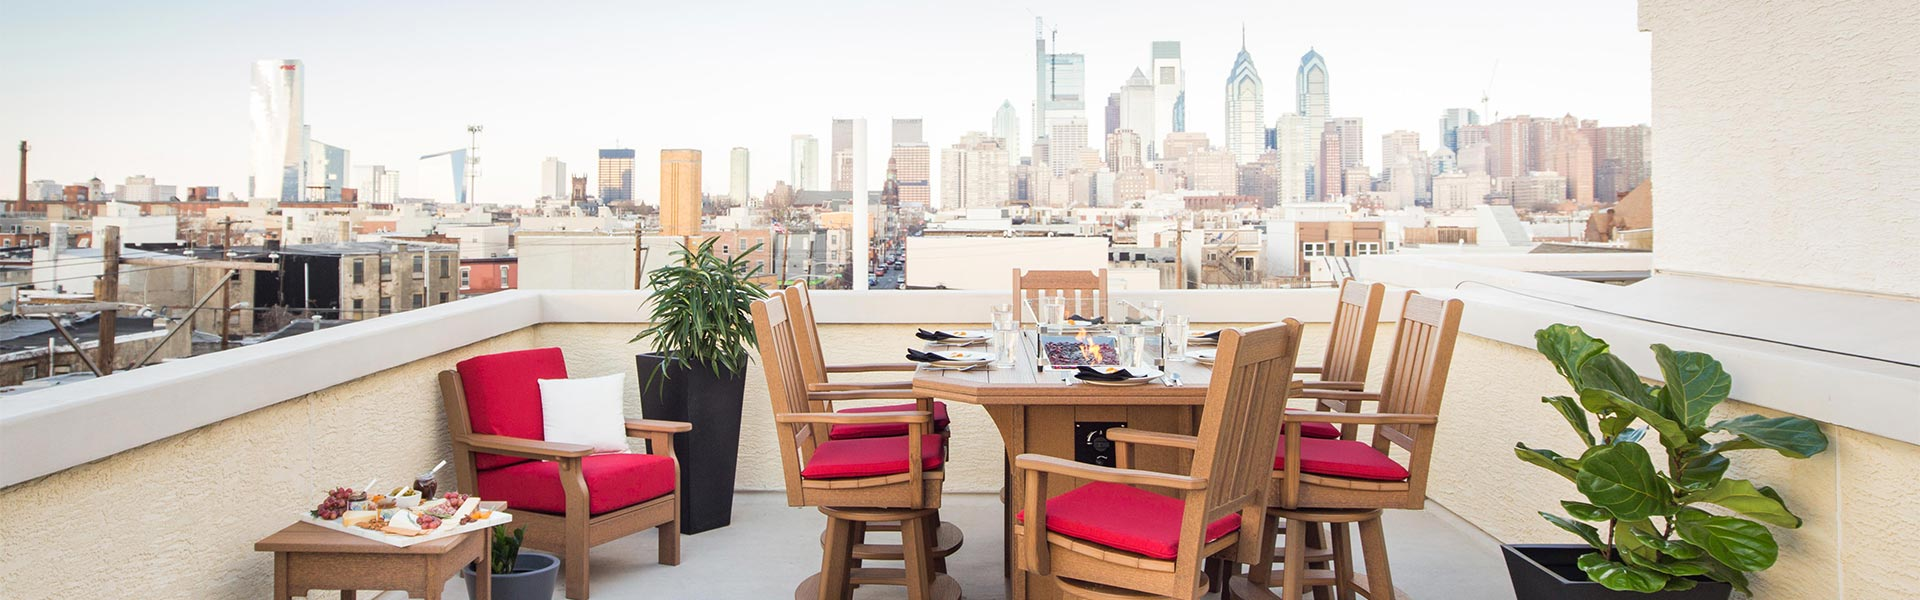 Bar height poly dining furniture set on roof top terrace